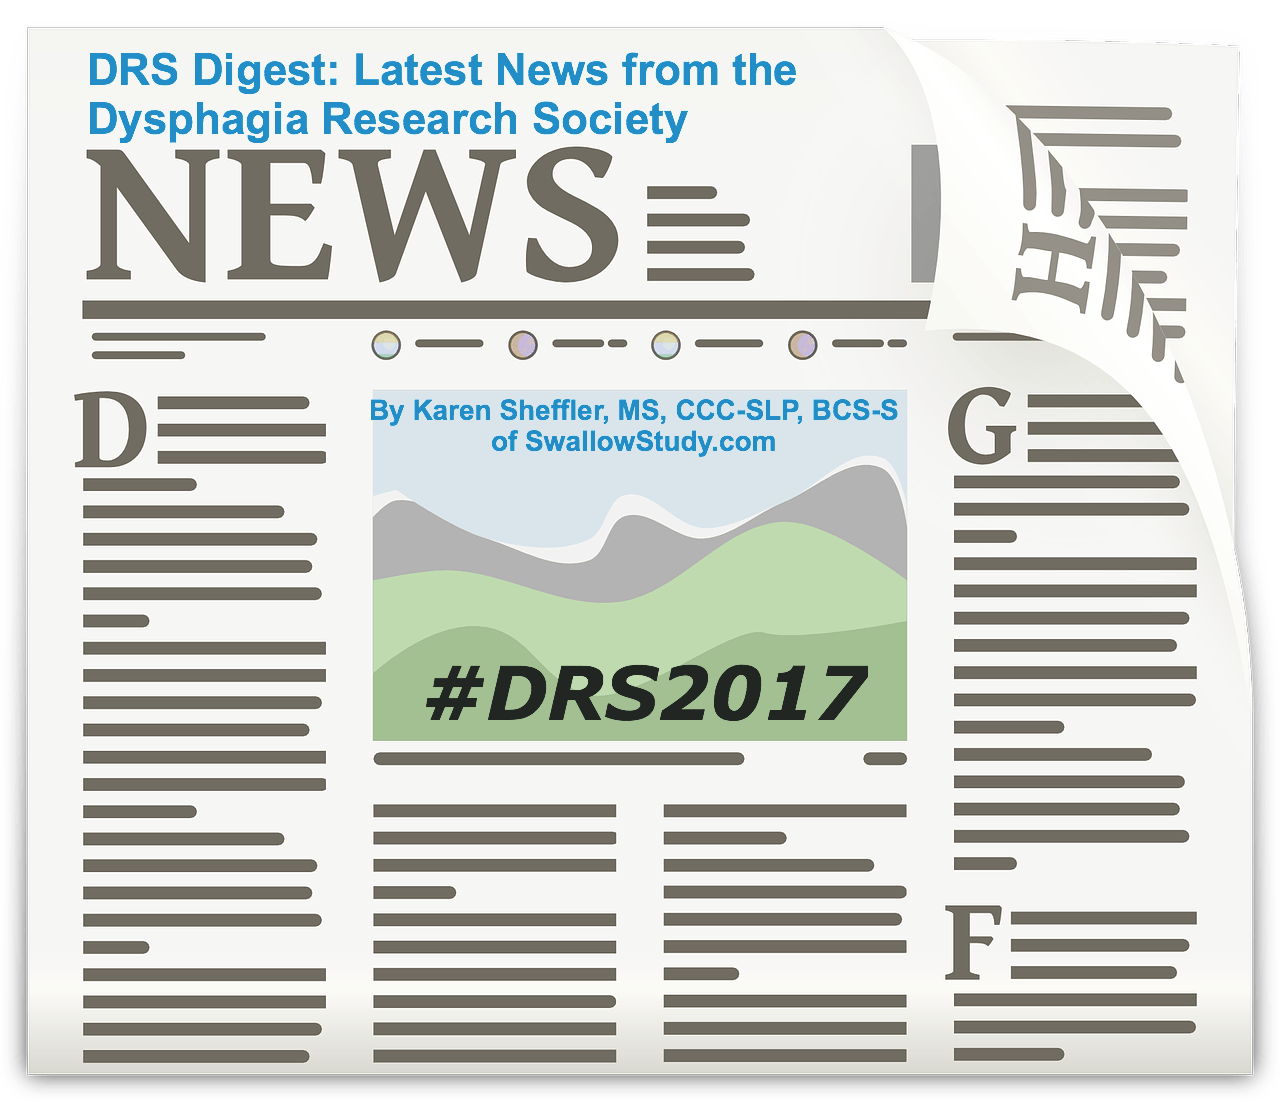 DRS Digest 2017: news from the March 1-4, 2017 annual meeting of the Dysphagia Research Society. Held in Portland, OR. Raising awareness regarding swallowing disorders.